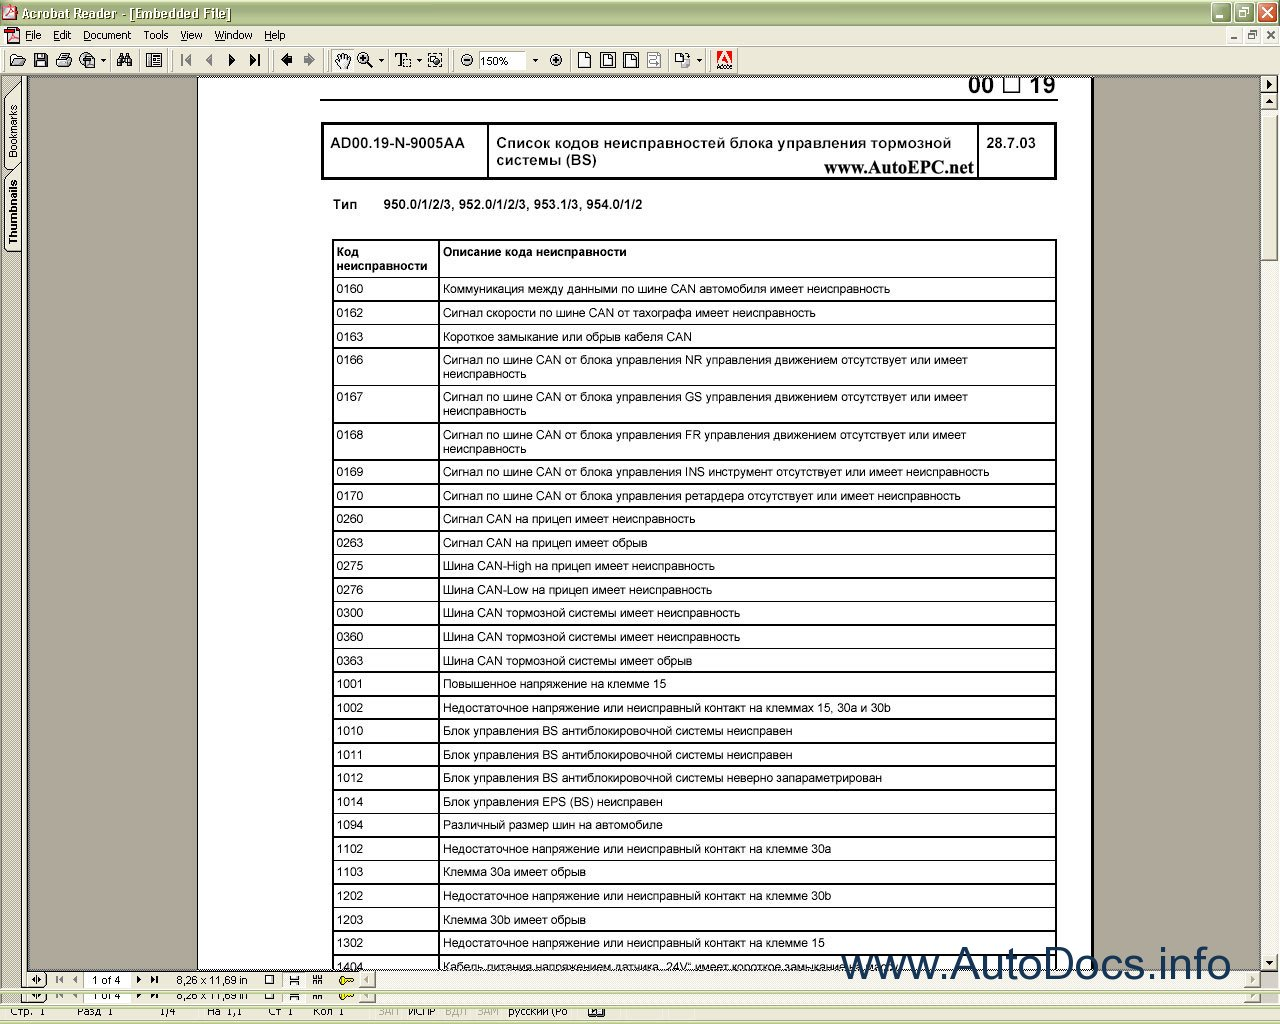 Mercedes Atego Manual Pdf Alfa Romeo Spider Owners Array Actros Repair Download 8052609 Ejobnet Info Rh